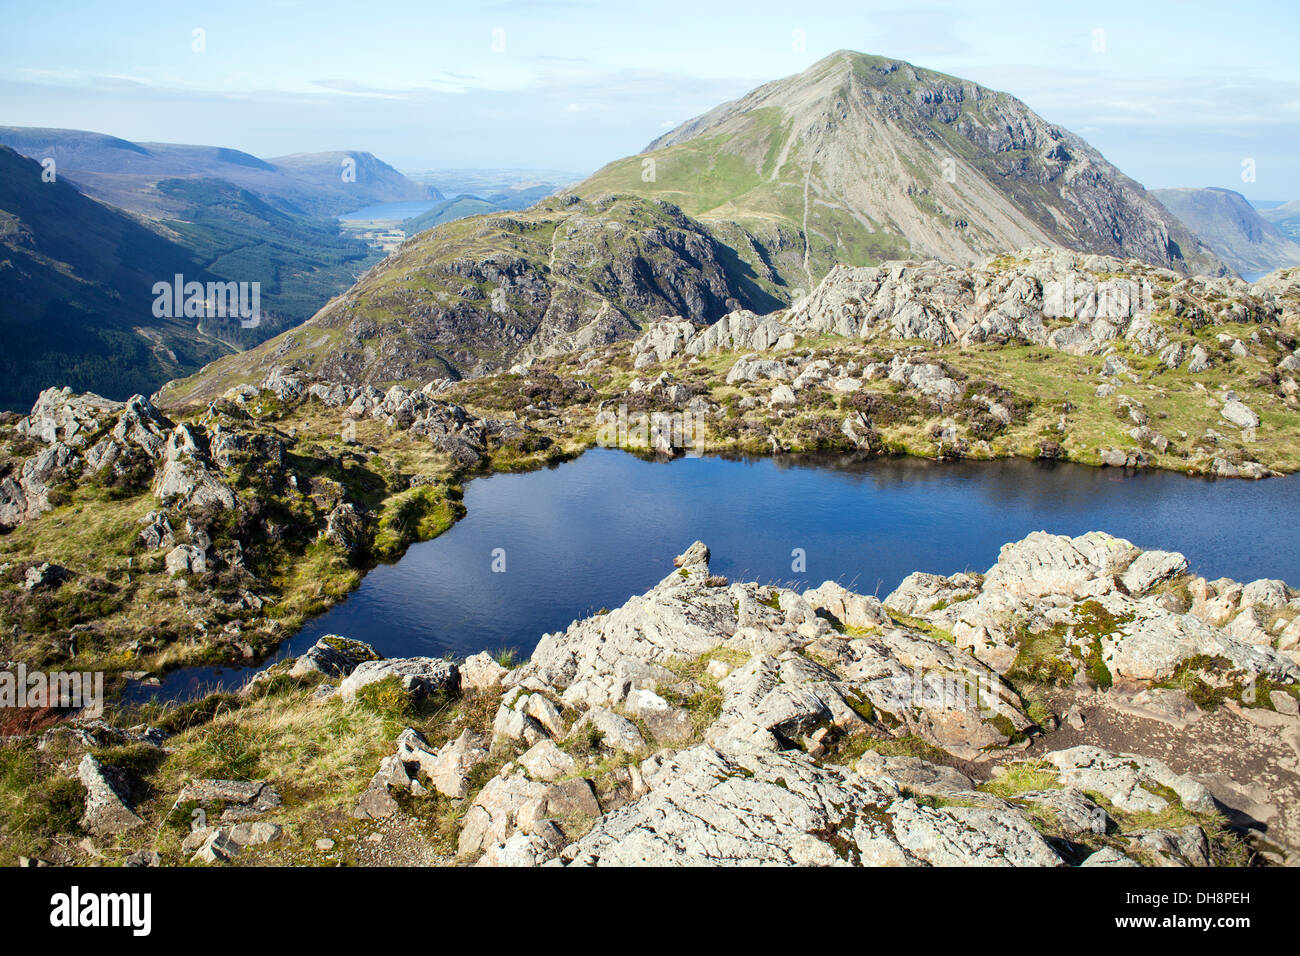 Tarn on the top of Haystack, Lake District, UK - Stock Image